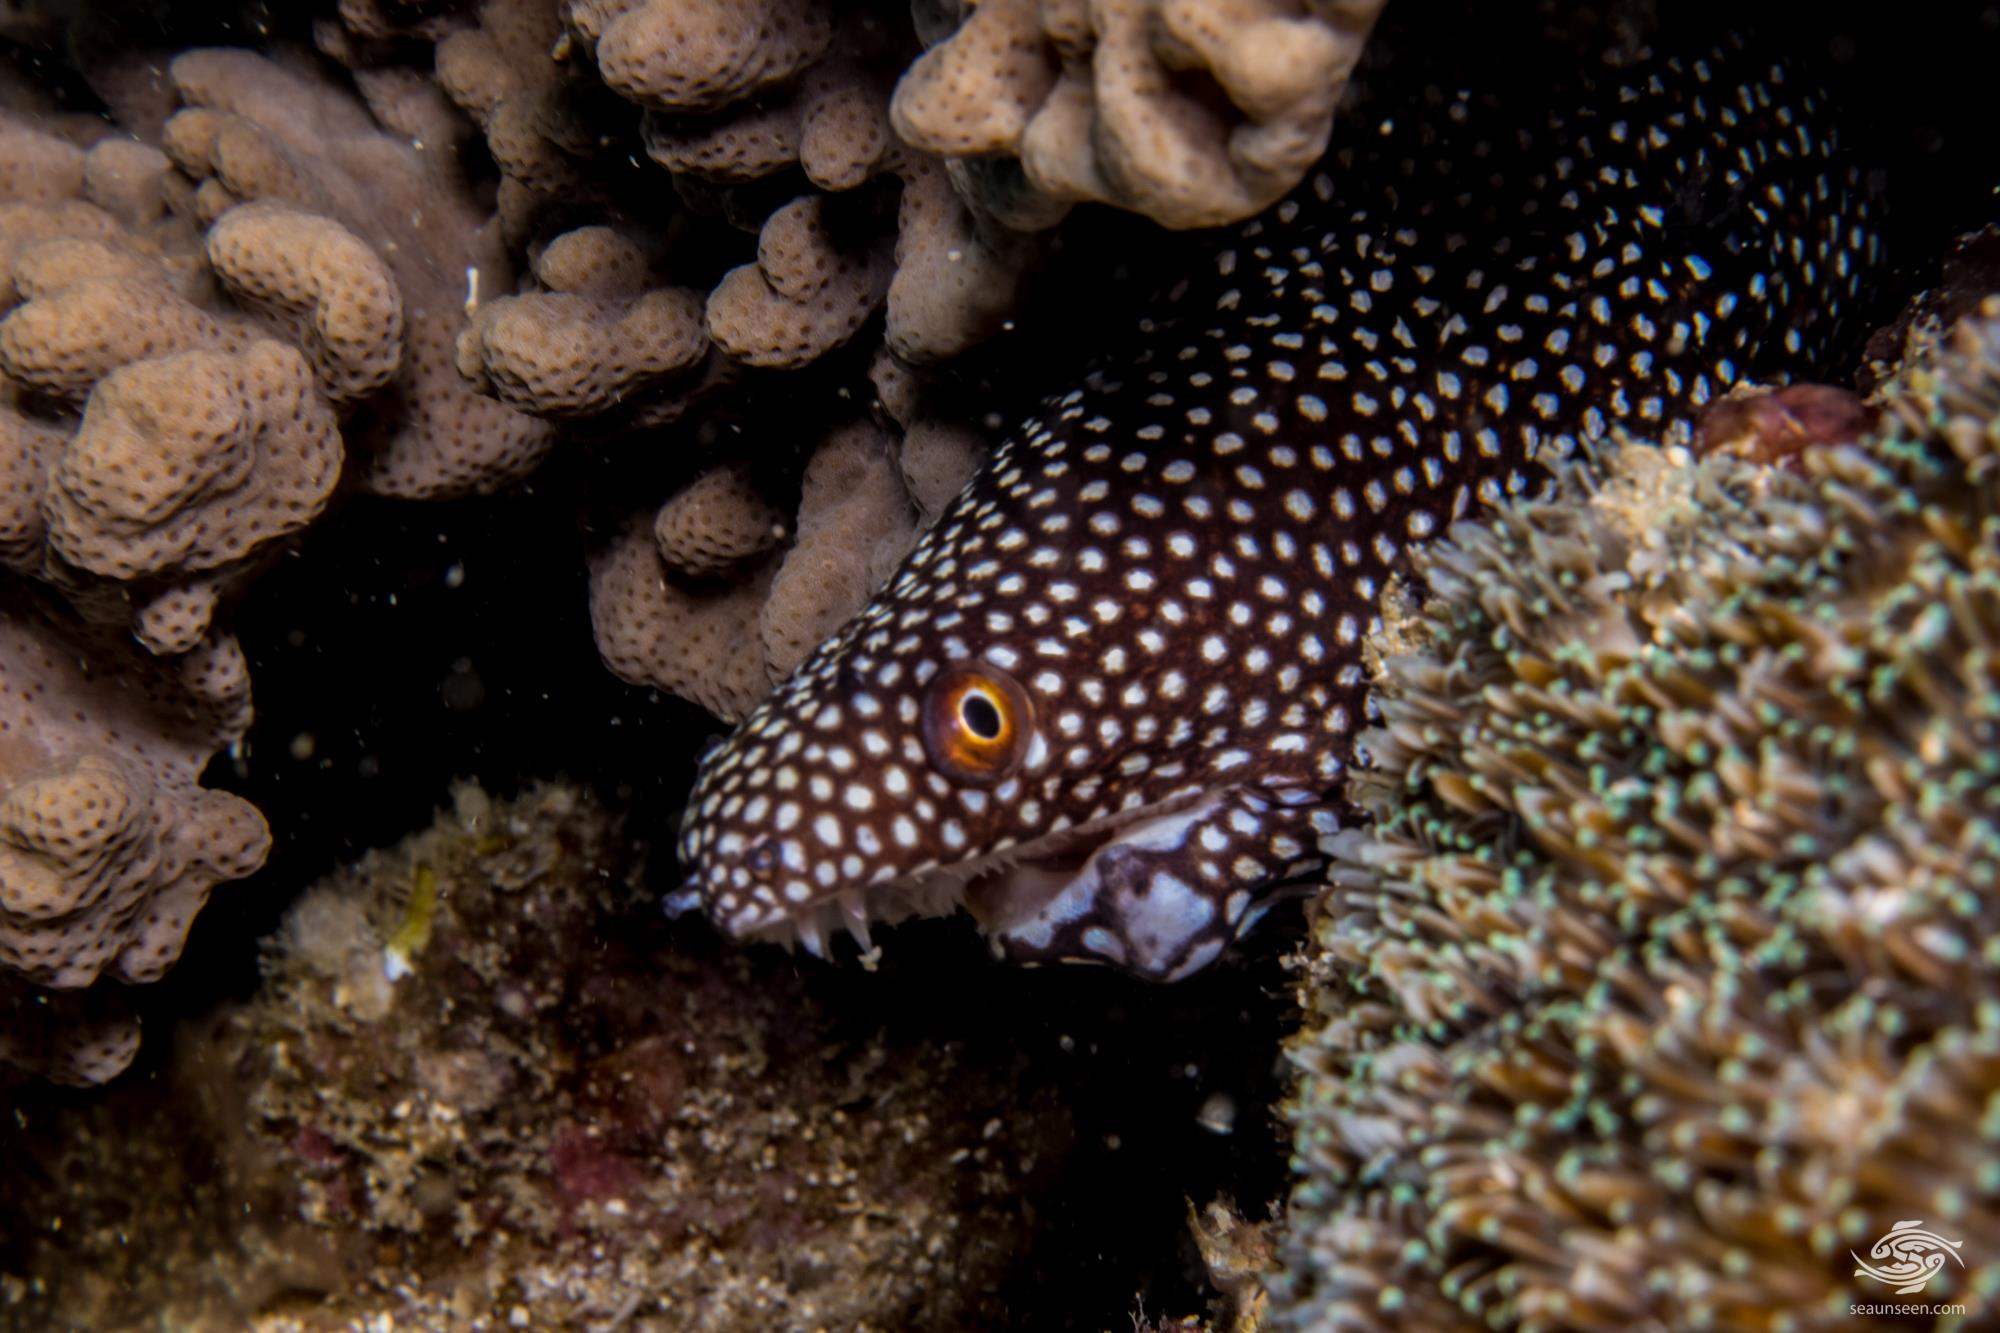 injured White-Mouth Moray eel (Gymnothorax Meleagris)